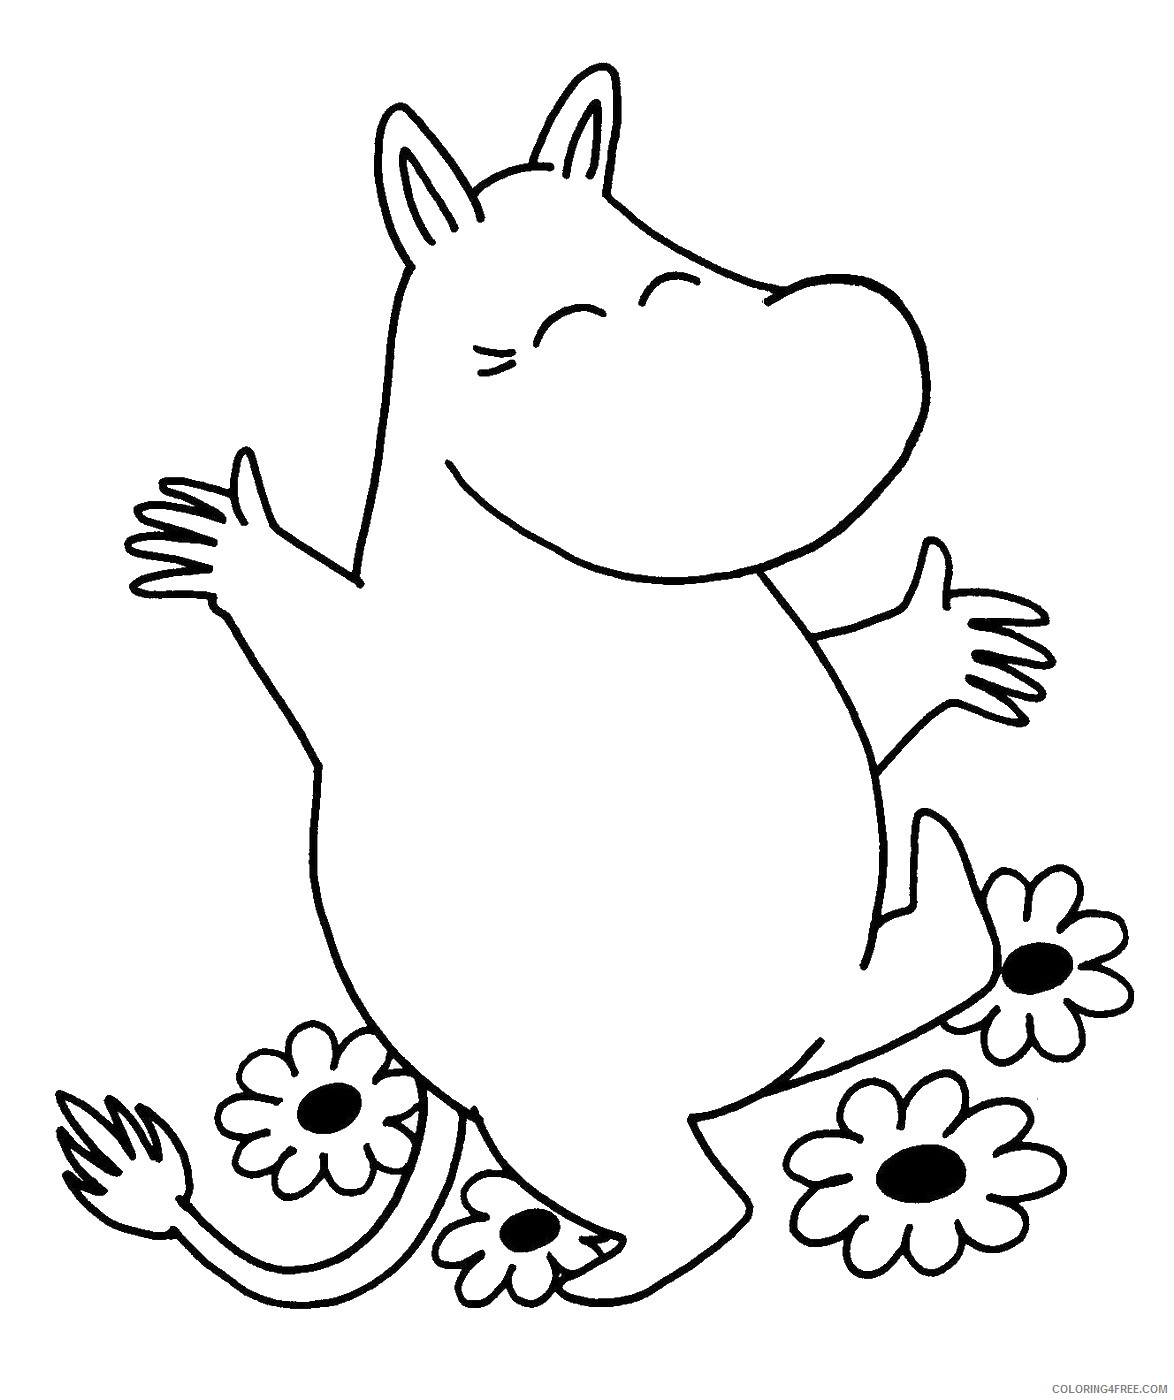 The Moomins Coloring Pages Cartoons moomins_cl_09 Printable 2020 6489 Coloring4free